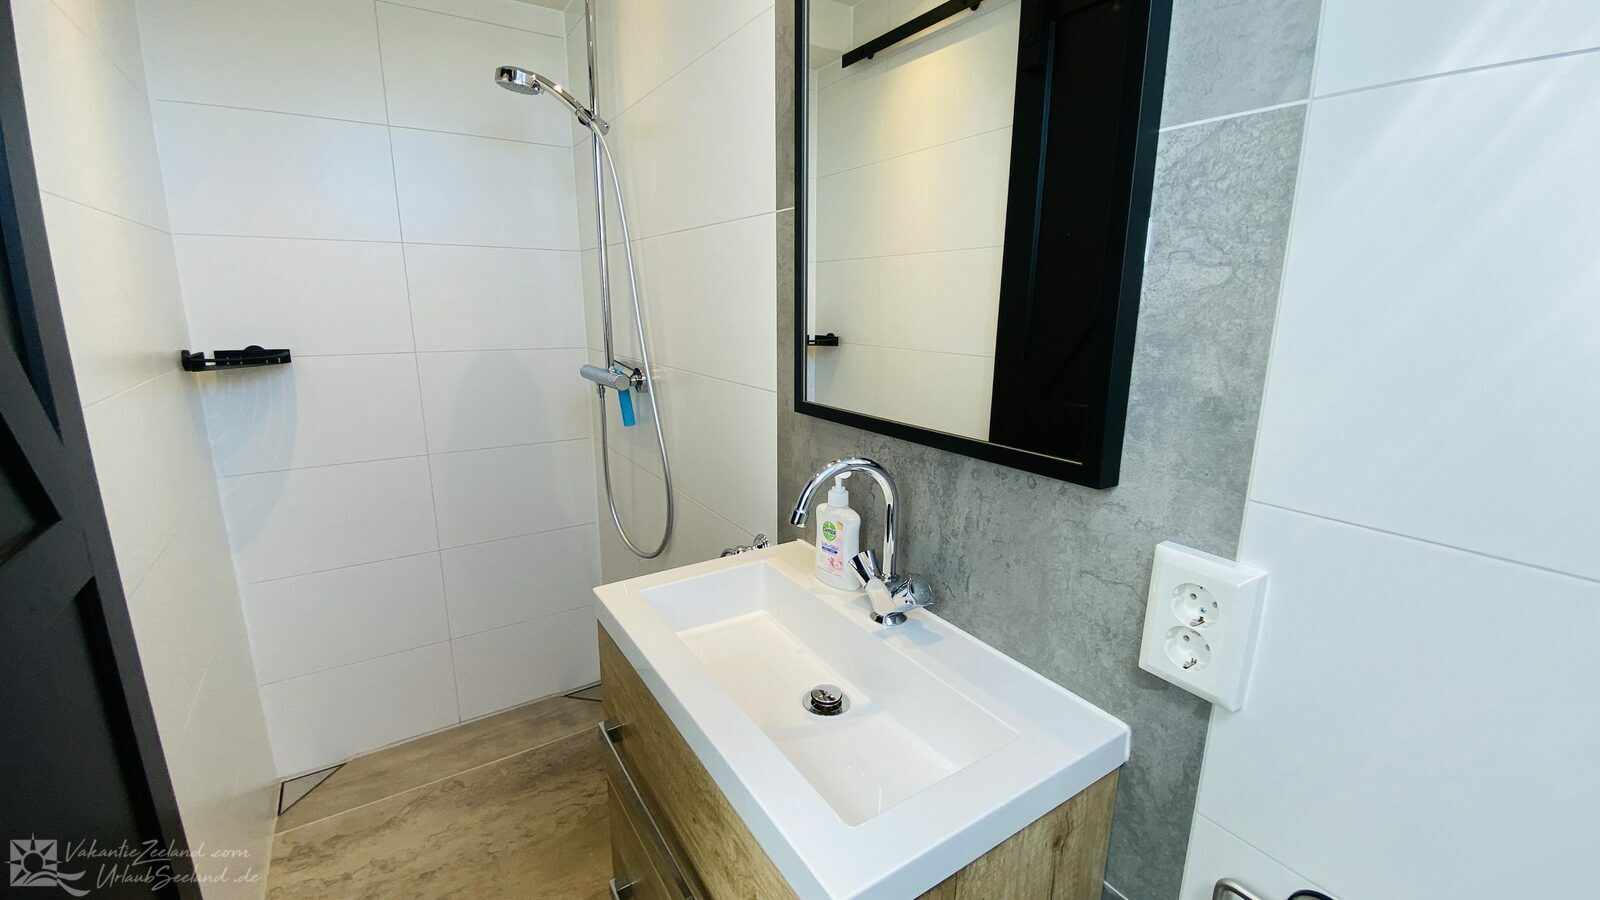 VZ174 Studio Apartment Aagtekerke